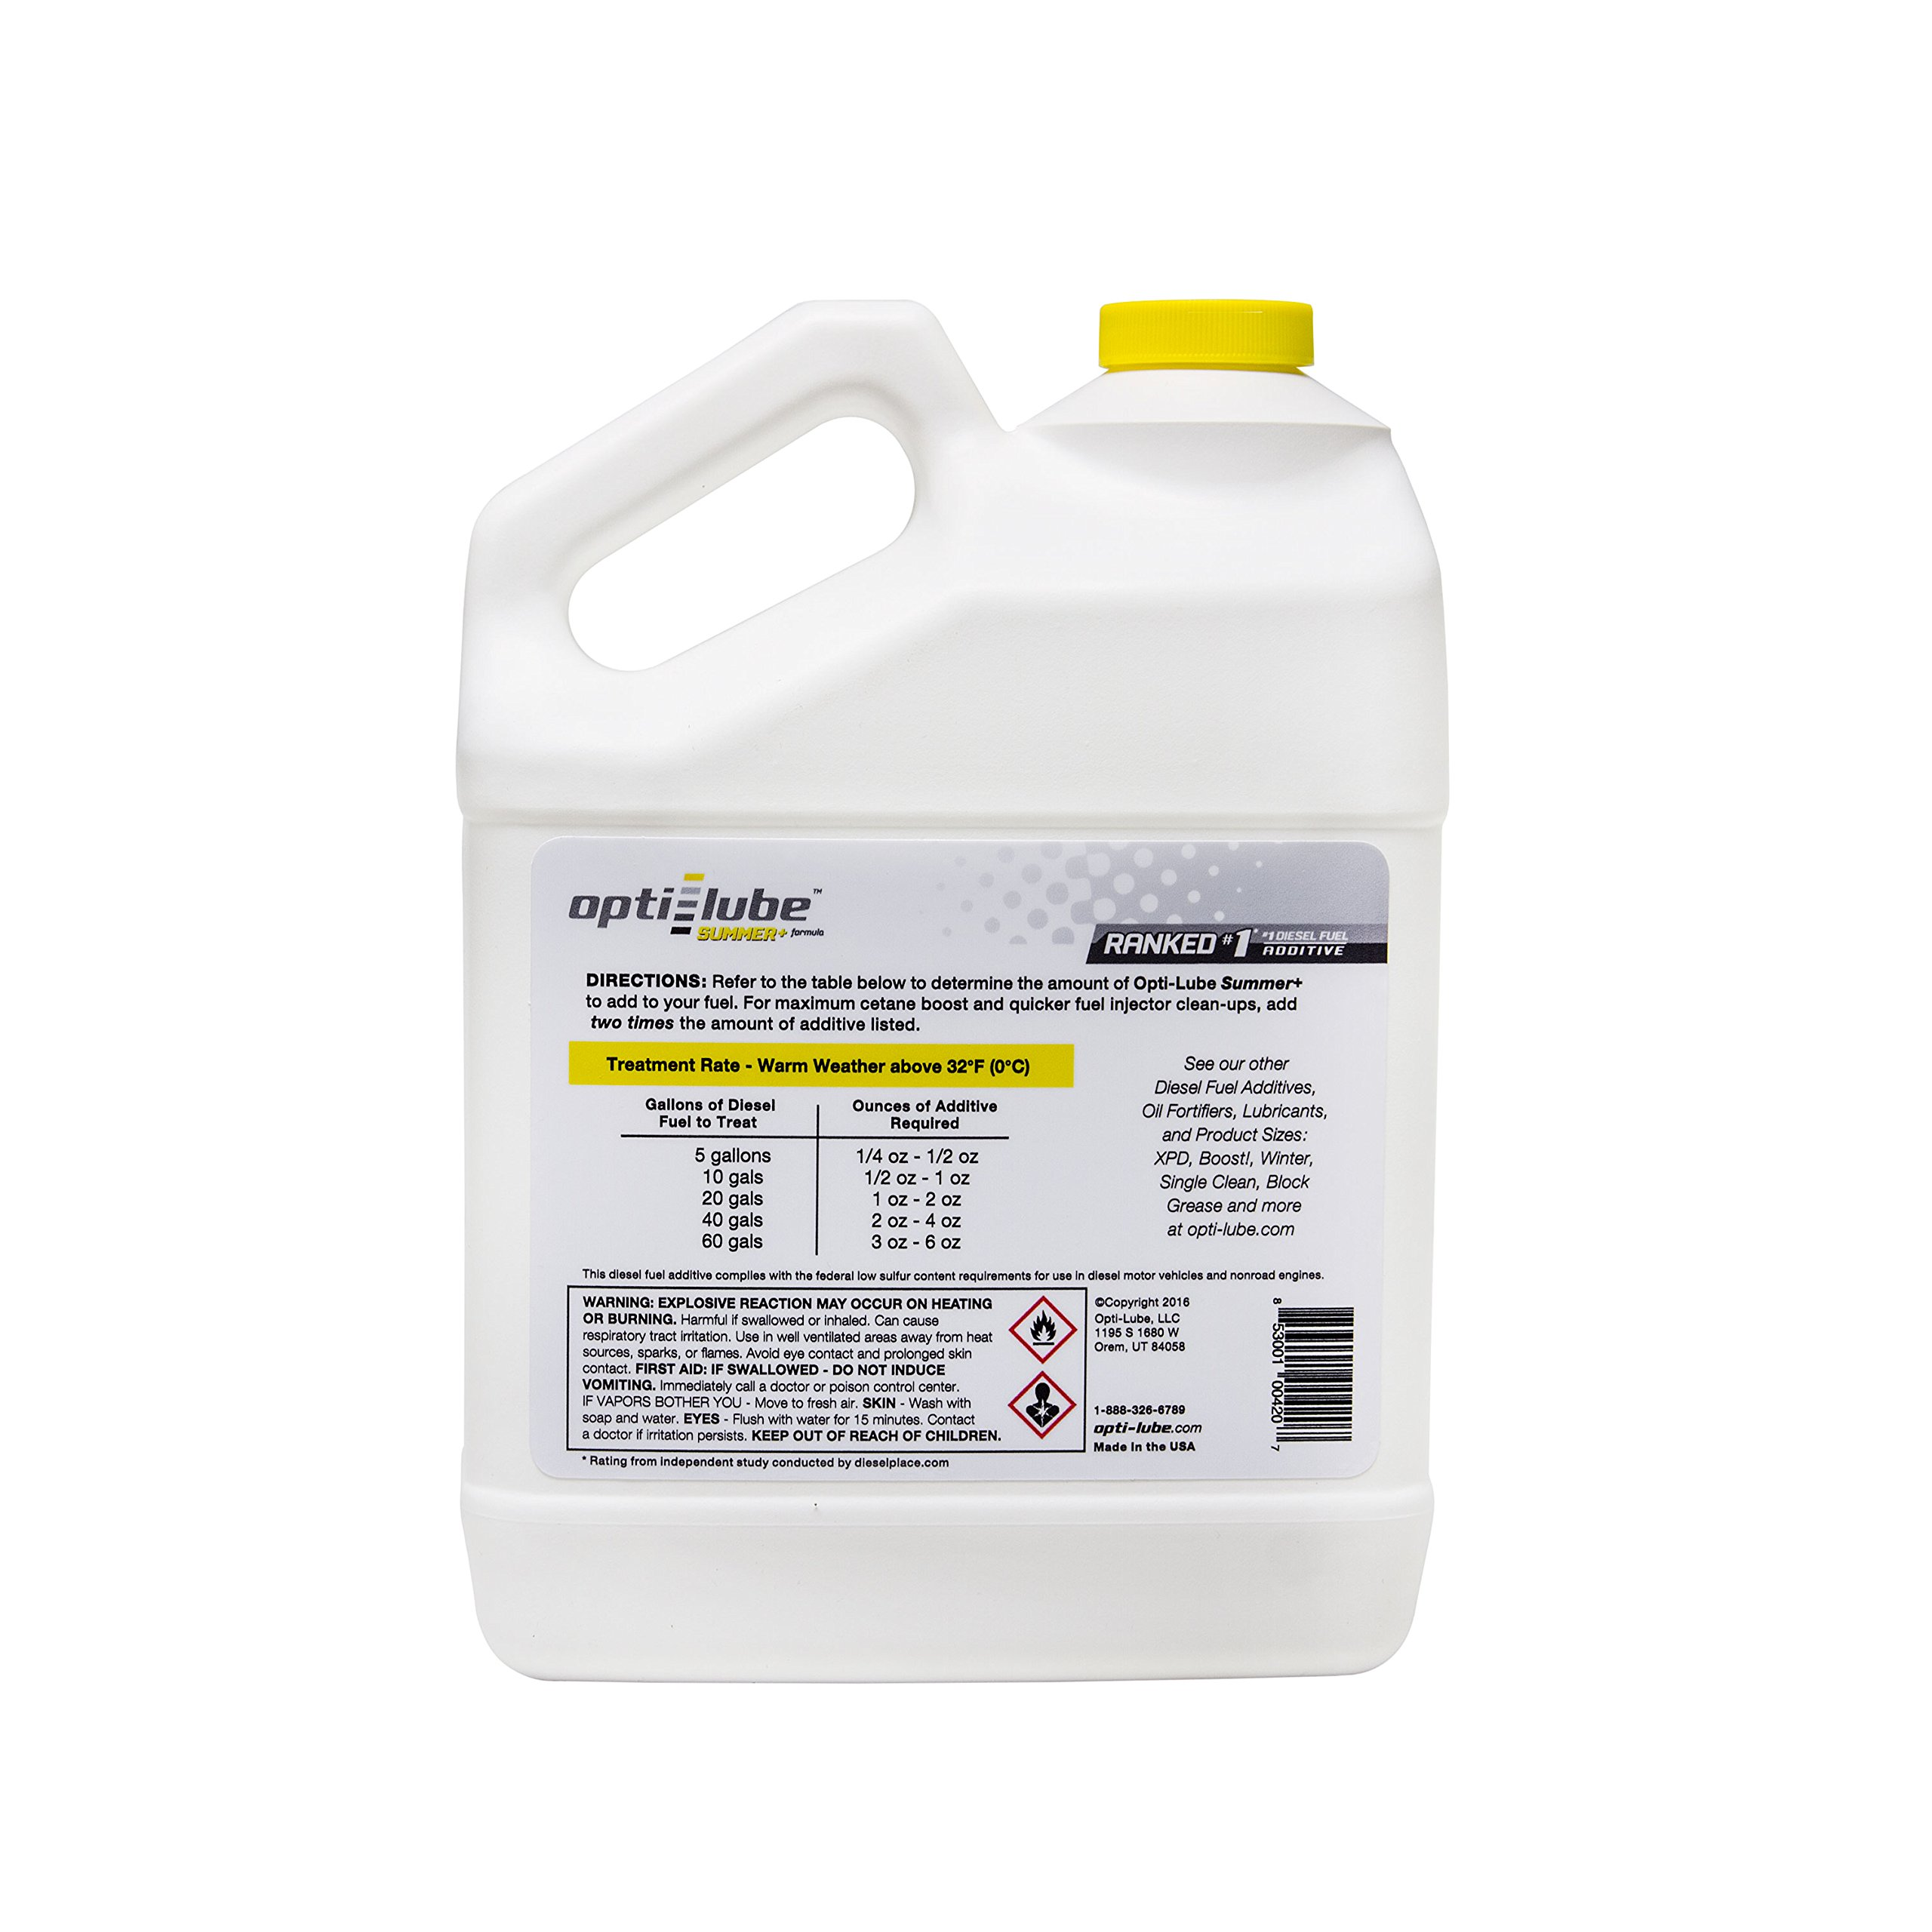 Opti-Lube Summer+ Formula Diesel Fuel Additive: 1 Gallon without Accessories Treats up to 2,560 Gallons by Opti-Lube